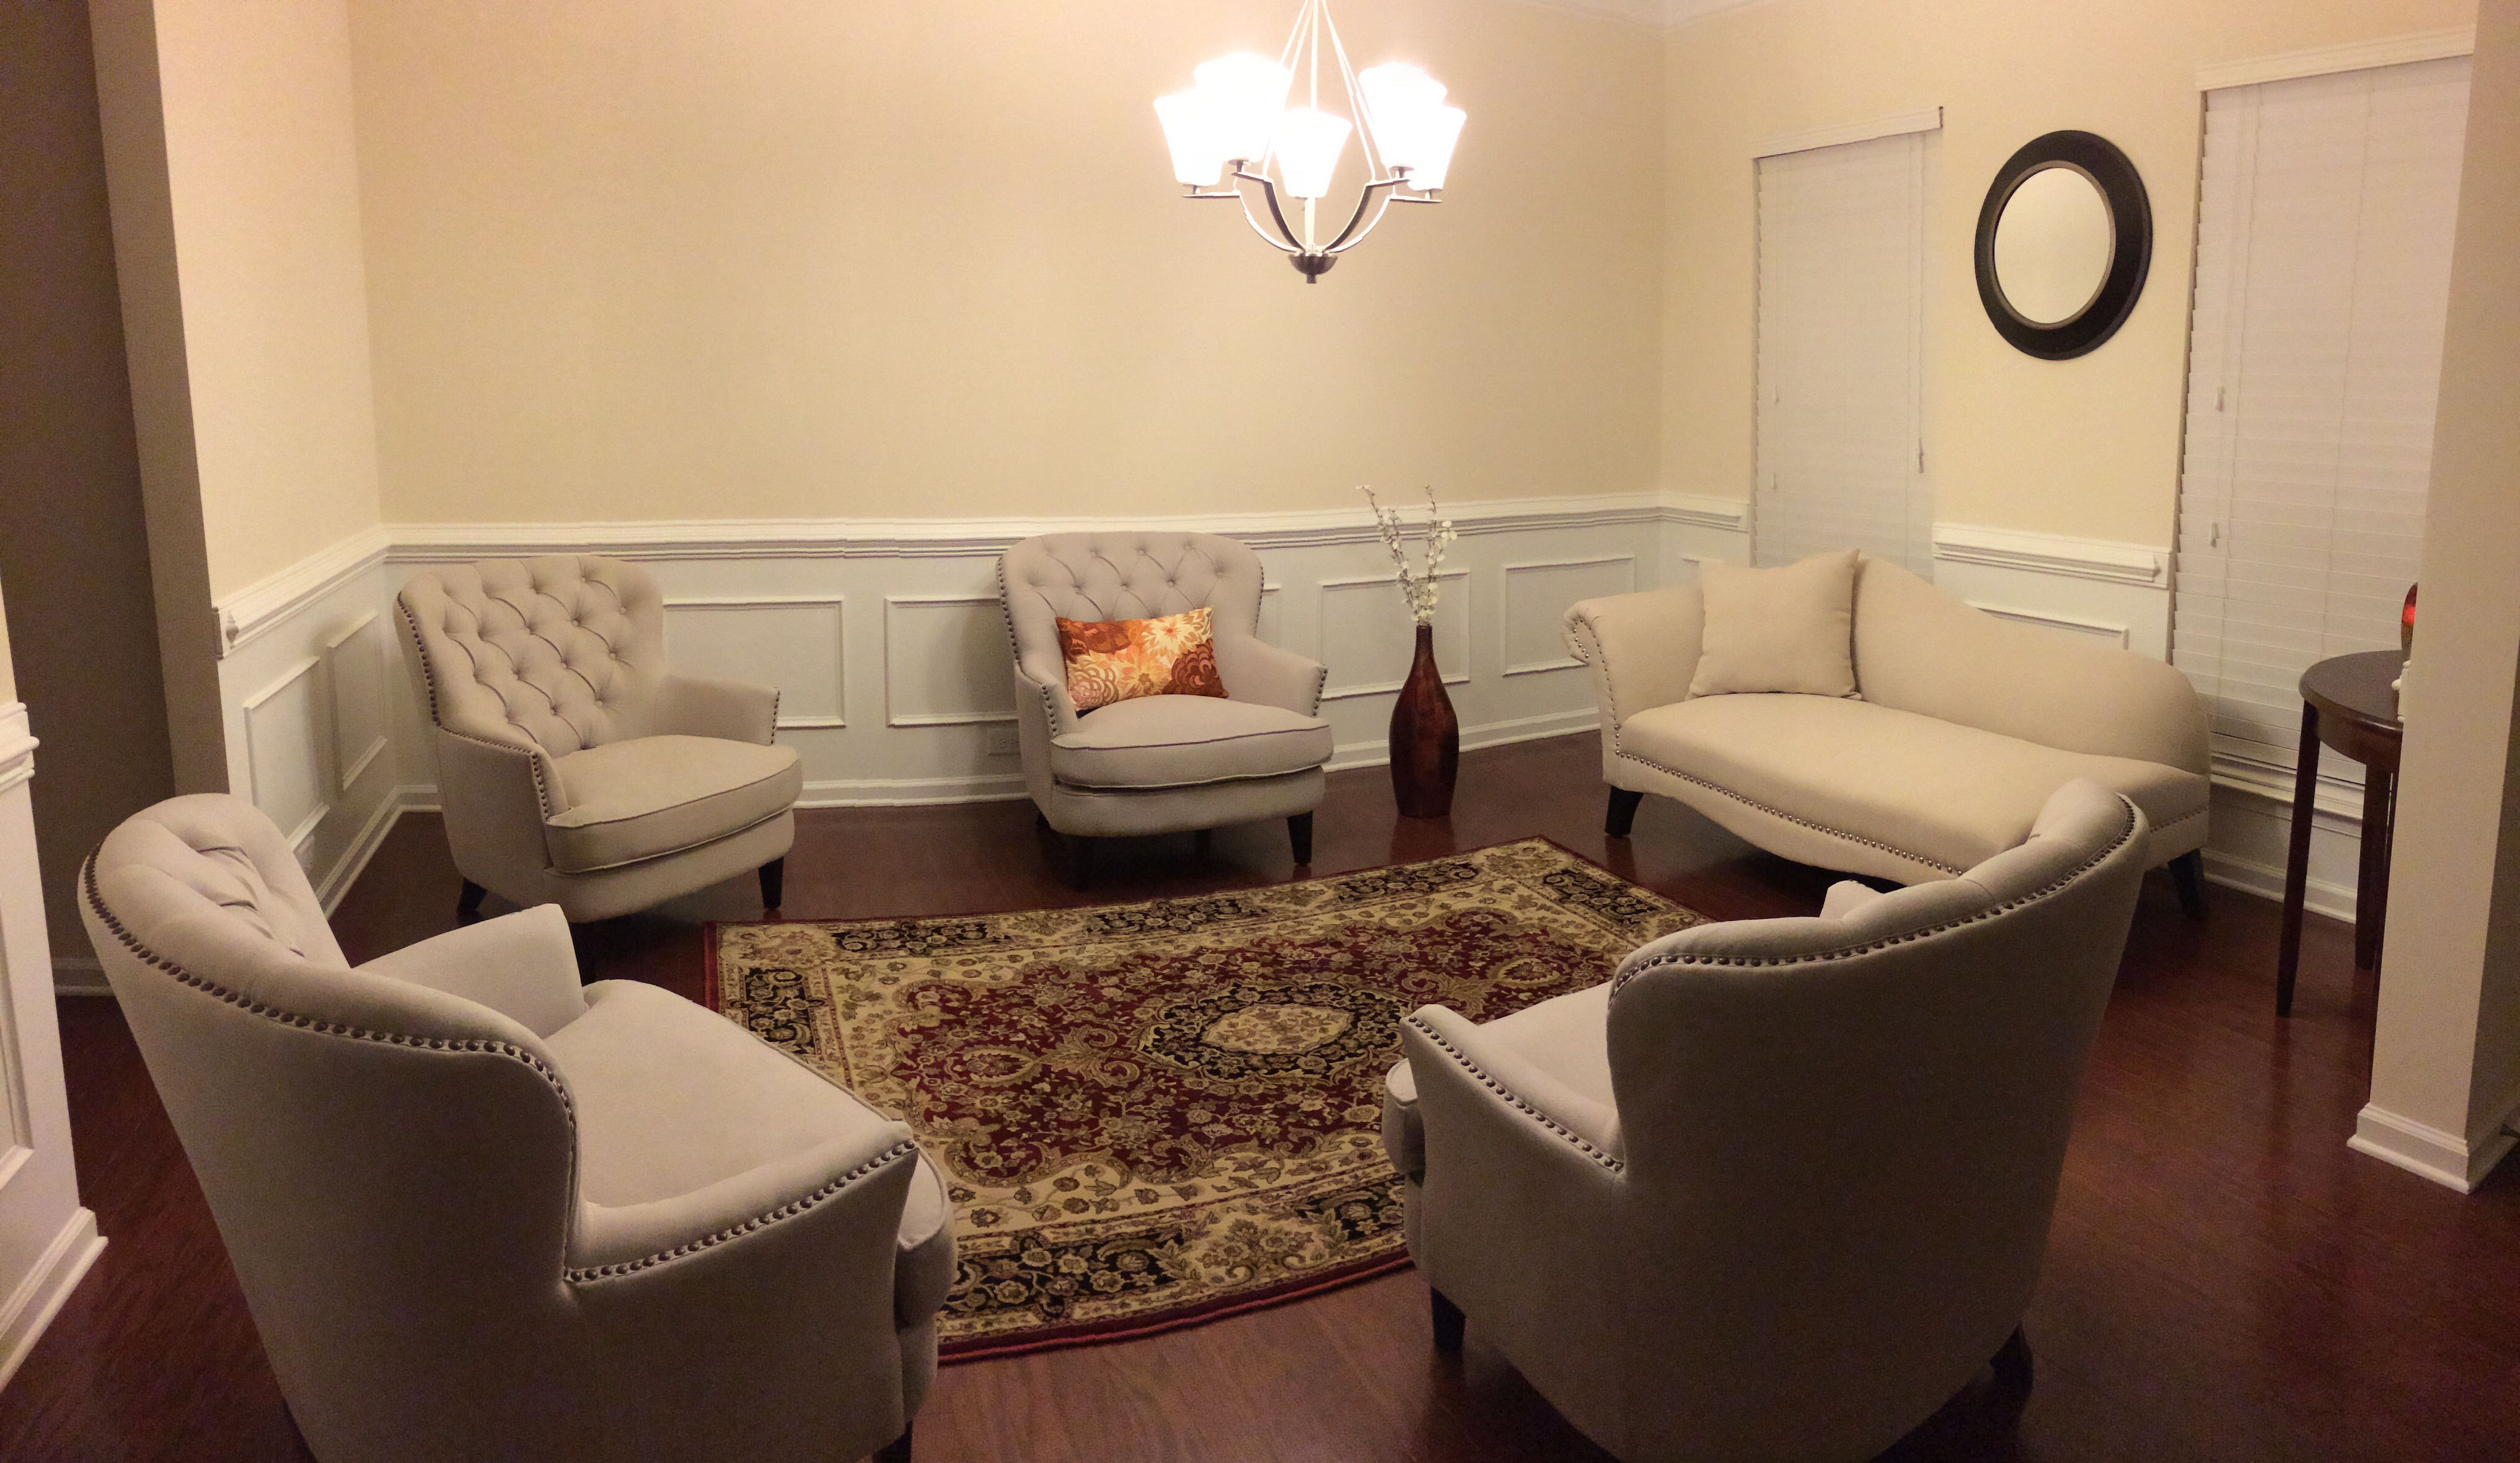 Converted The Formal Dining Room Into A Sitting New